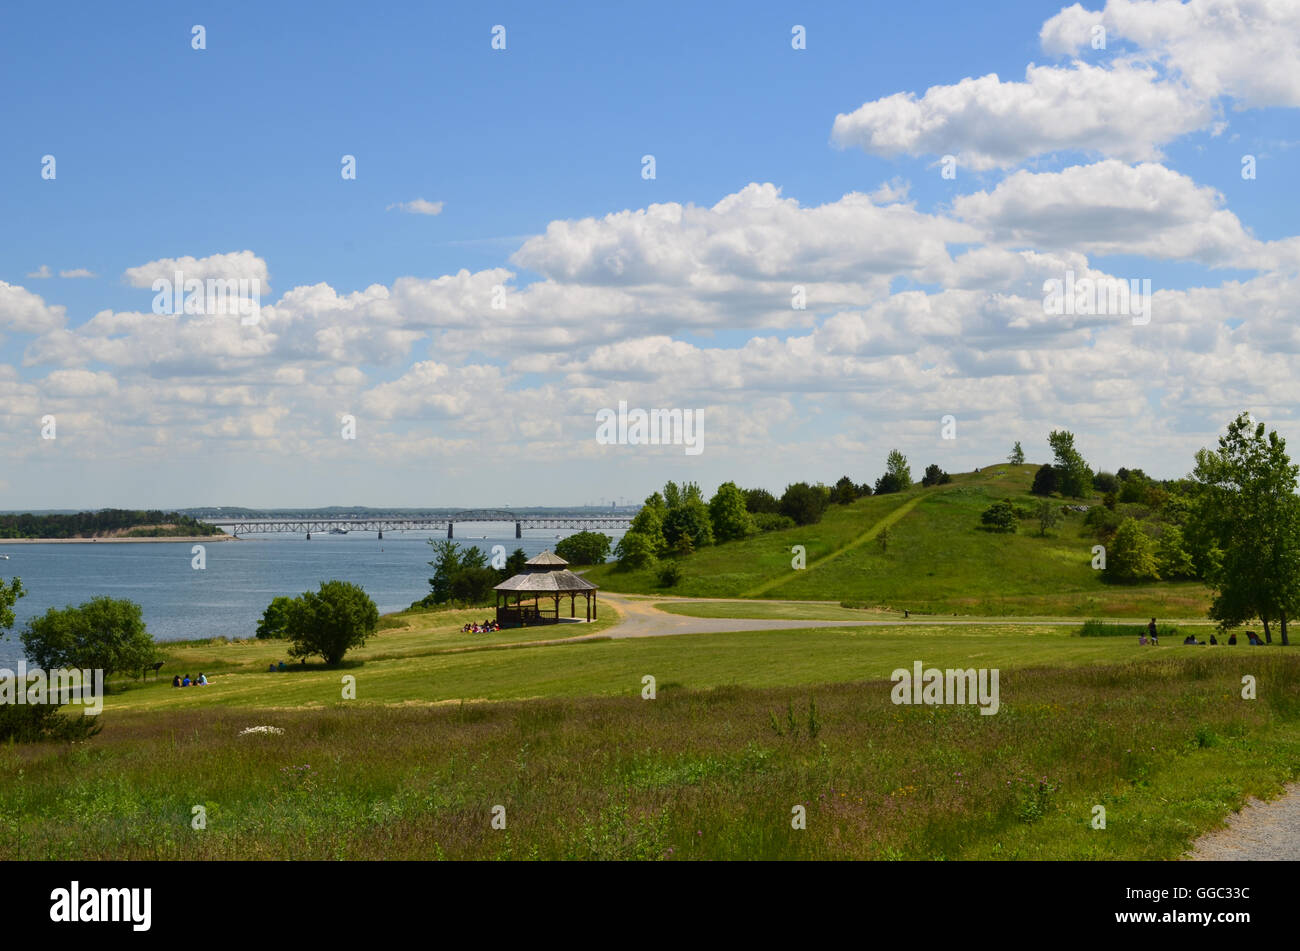 Hiking trails on Spectacle Island on a beautiful day with fluffy white clouds in the sky. - Stock Image